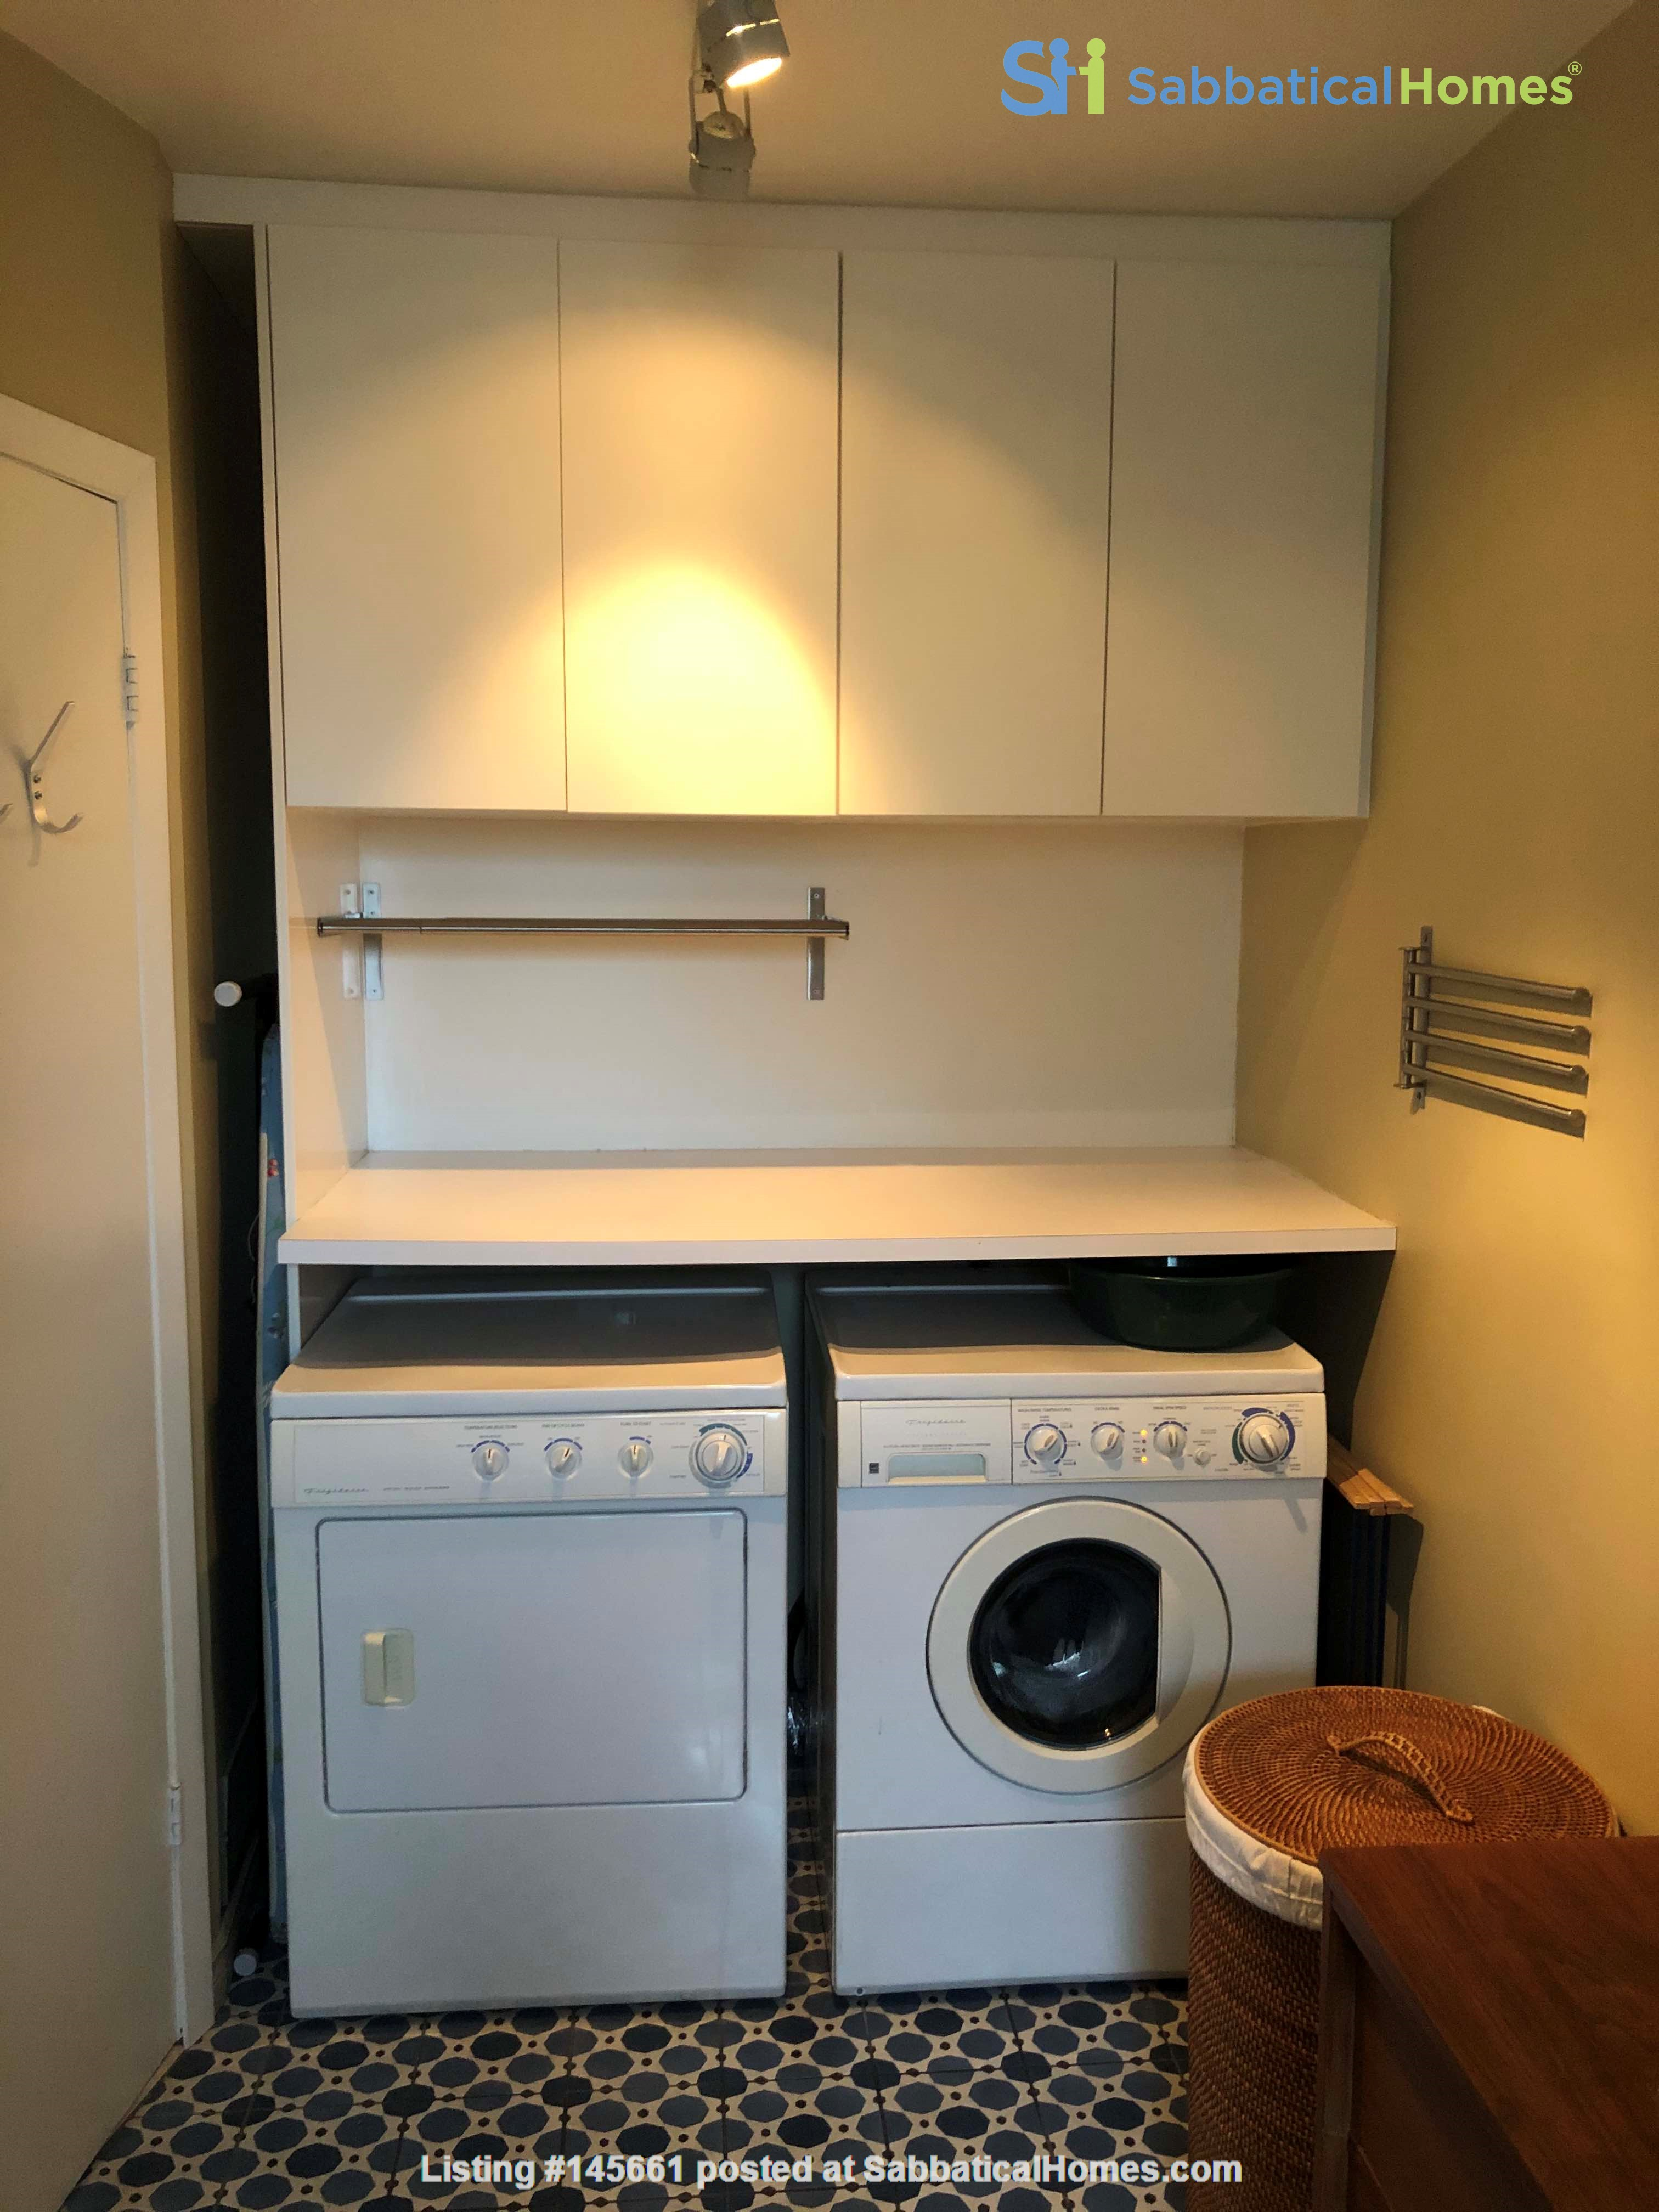 Beautiful fully furnished 2 BR in Vieux-Rosemont Home Rental in Montréal, Québec, Canada 5